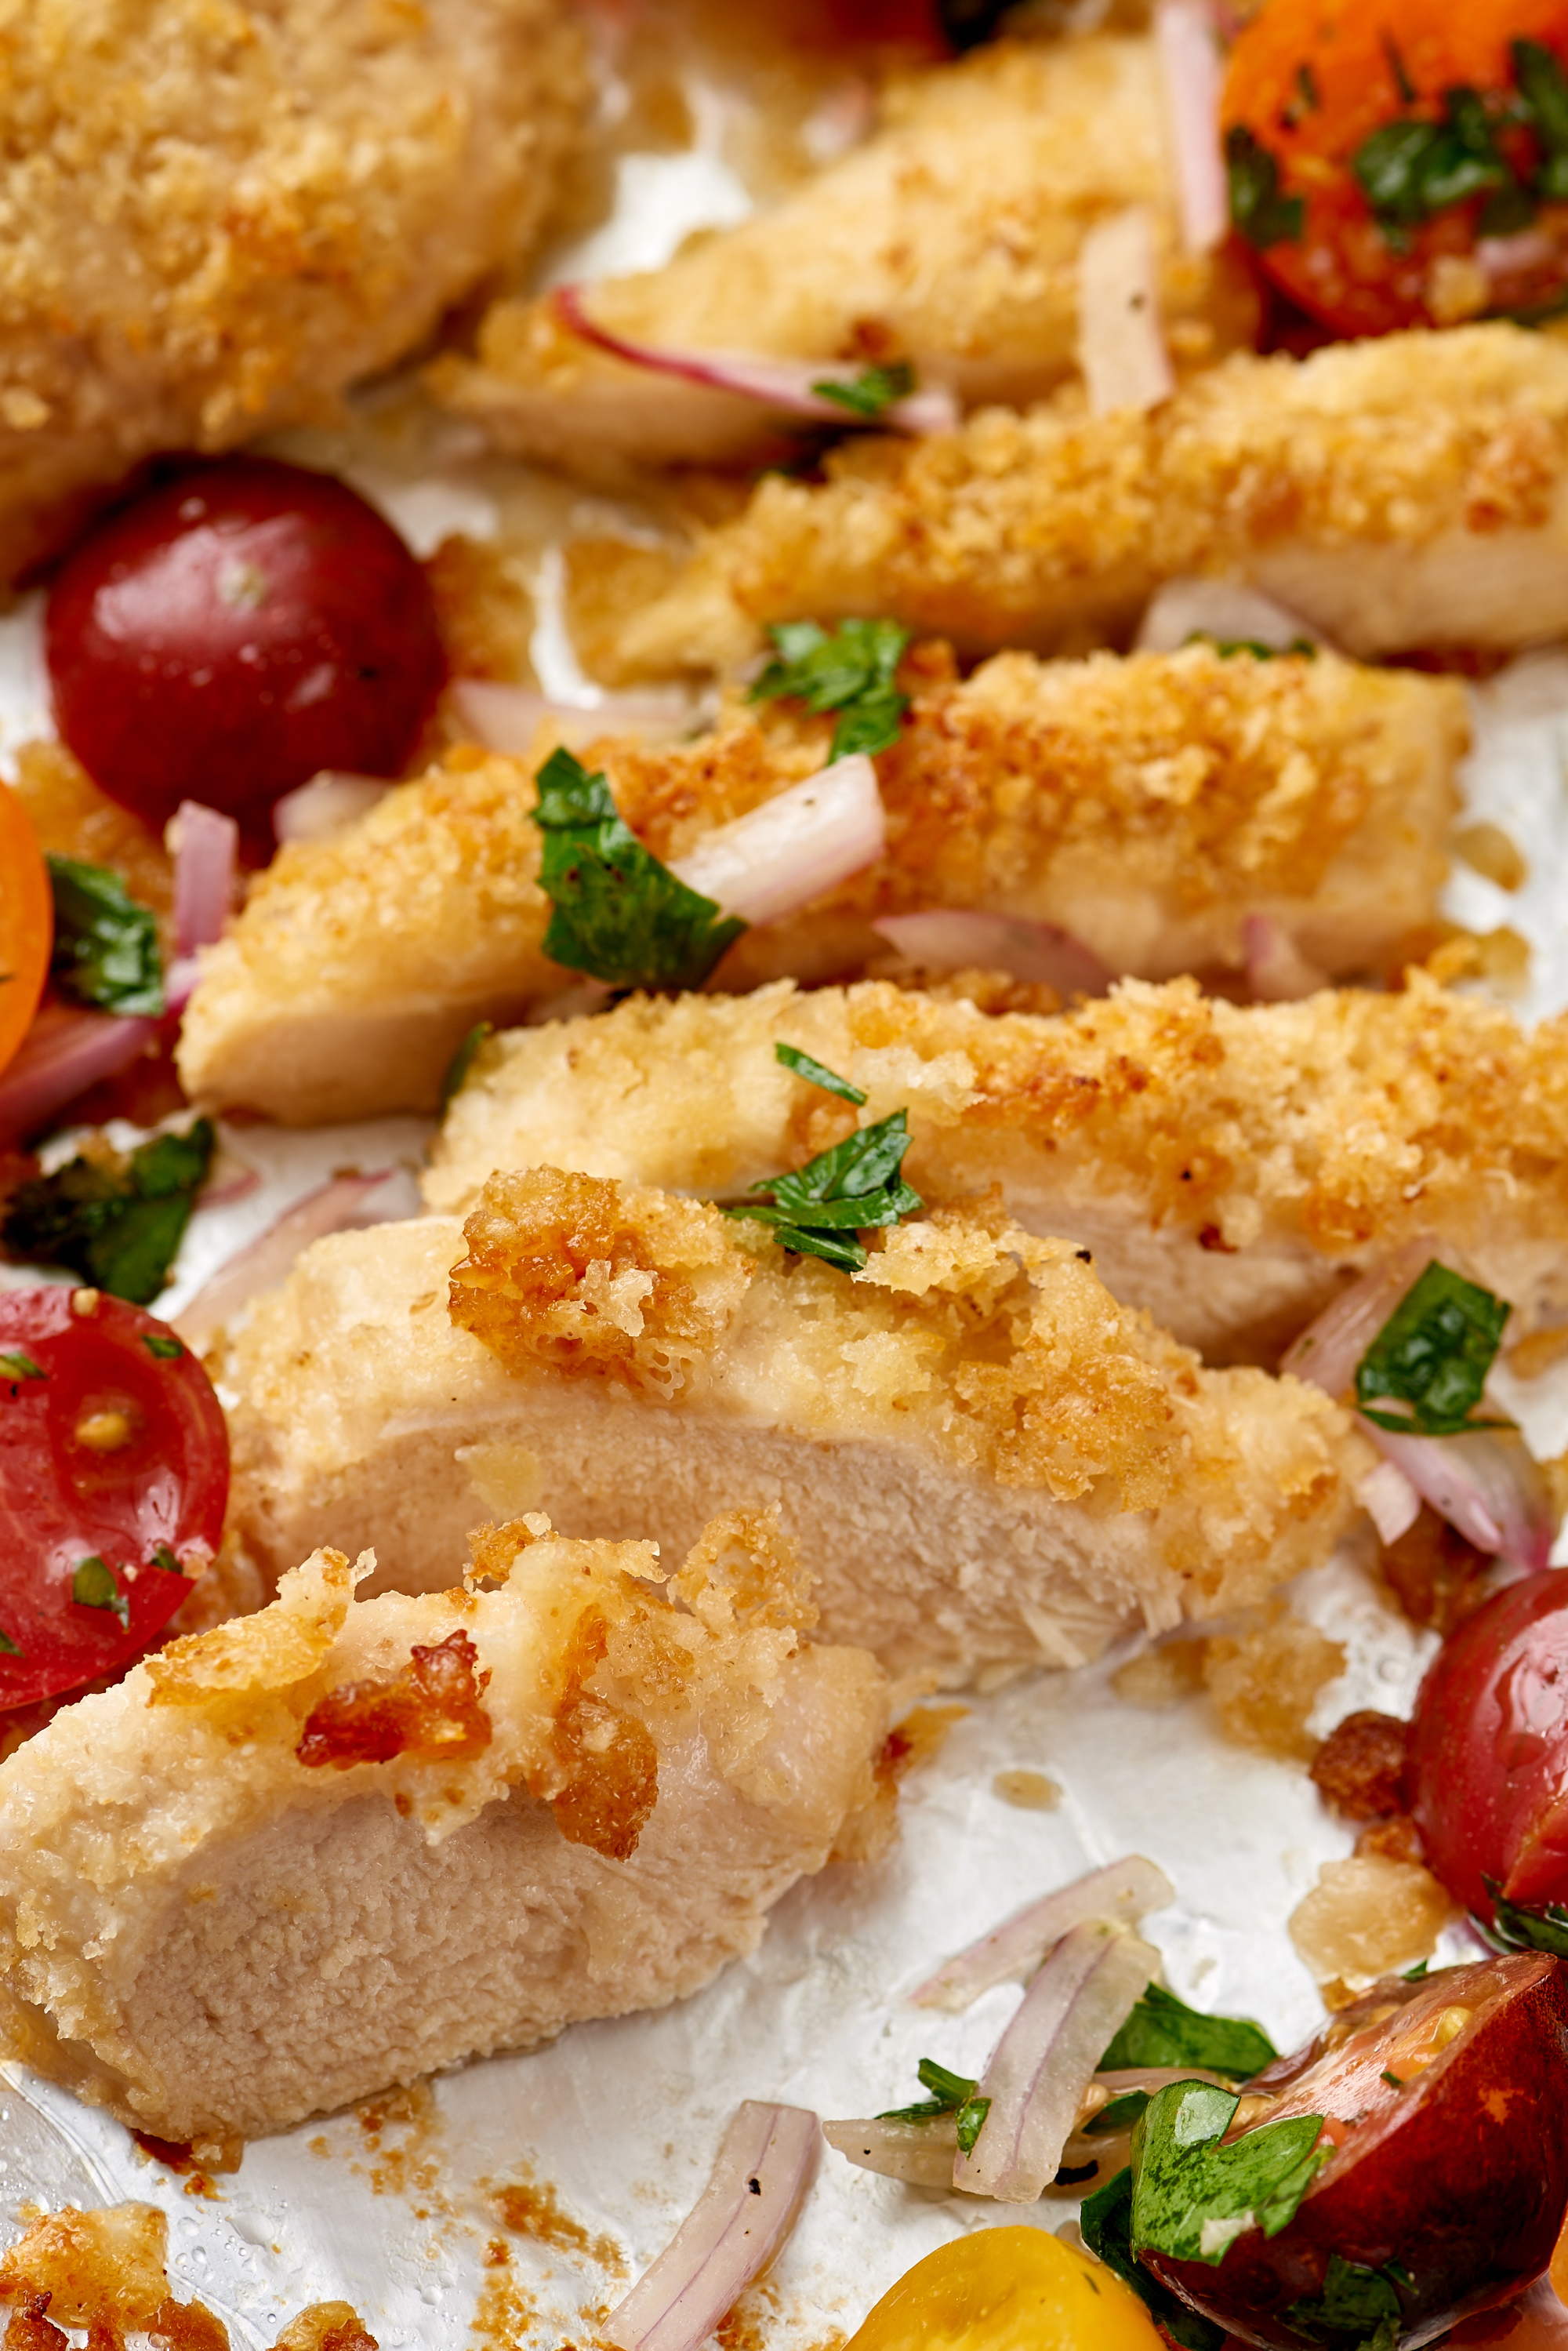 How long does it take to bake partially frozen chicken breast